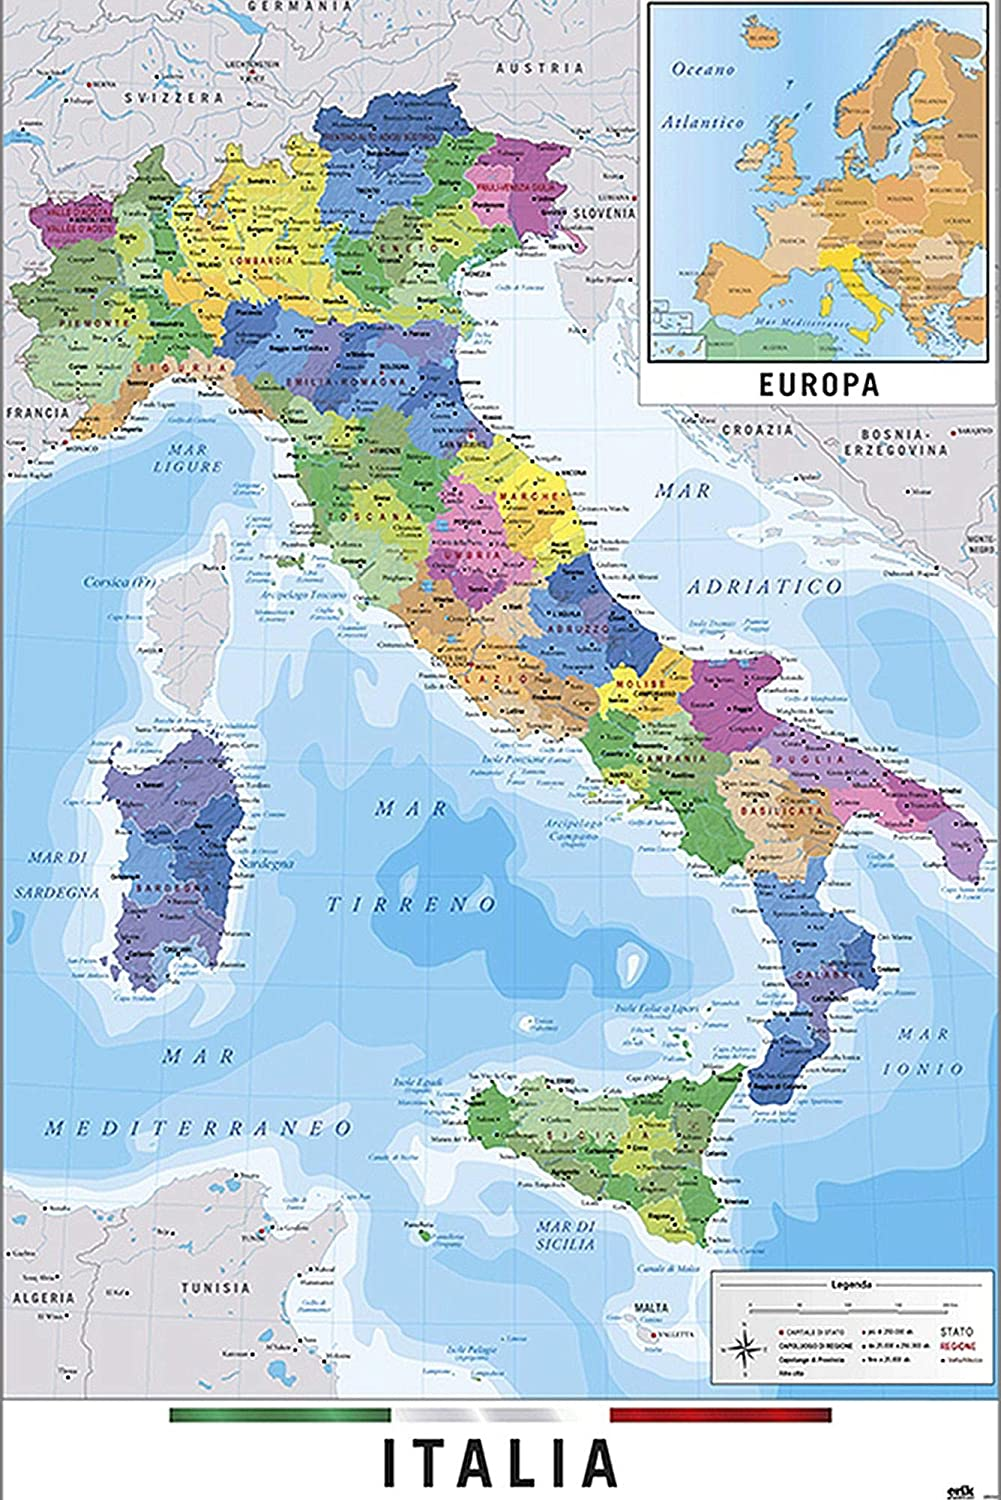 Cartina Politica Italia Foto.Close Up Mappa Fisico Politica Dell Italia 61cm X 91 5cm Amazon It Casa E Cucina